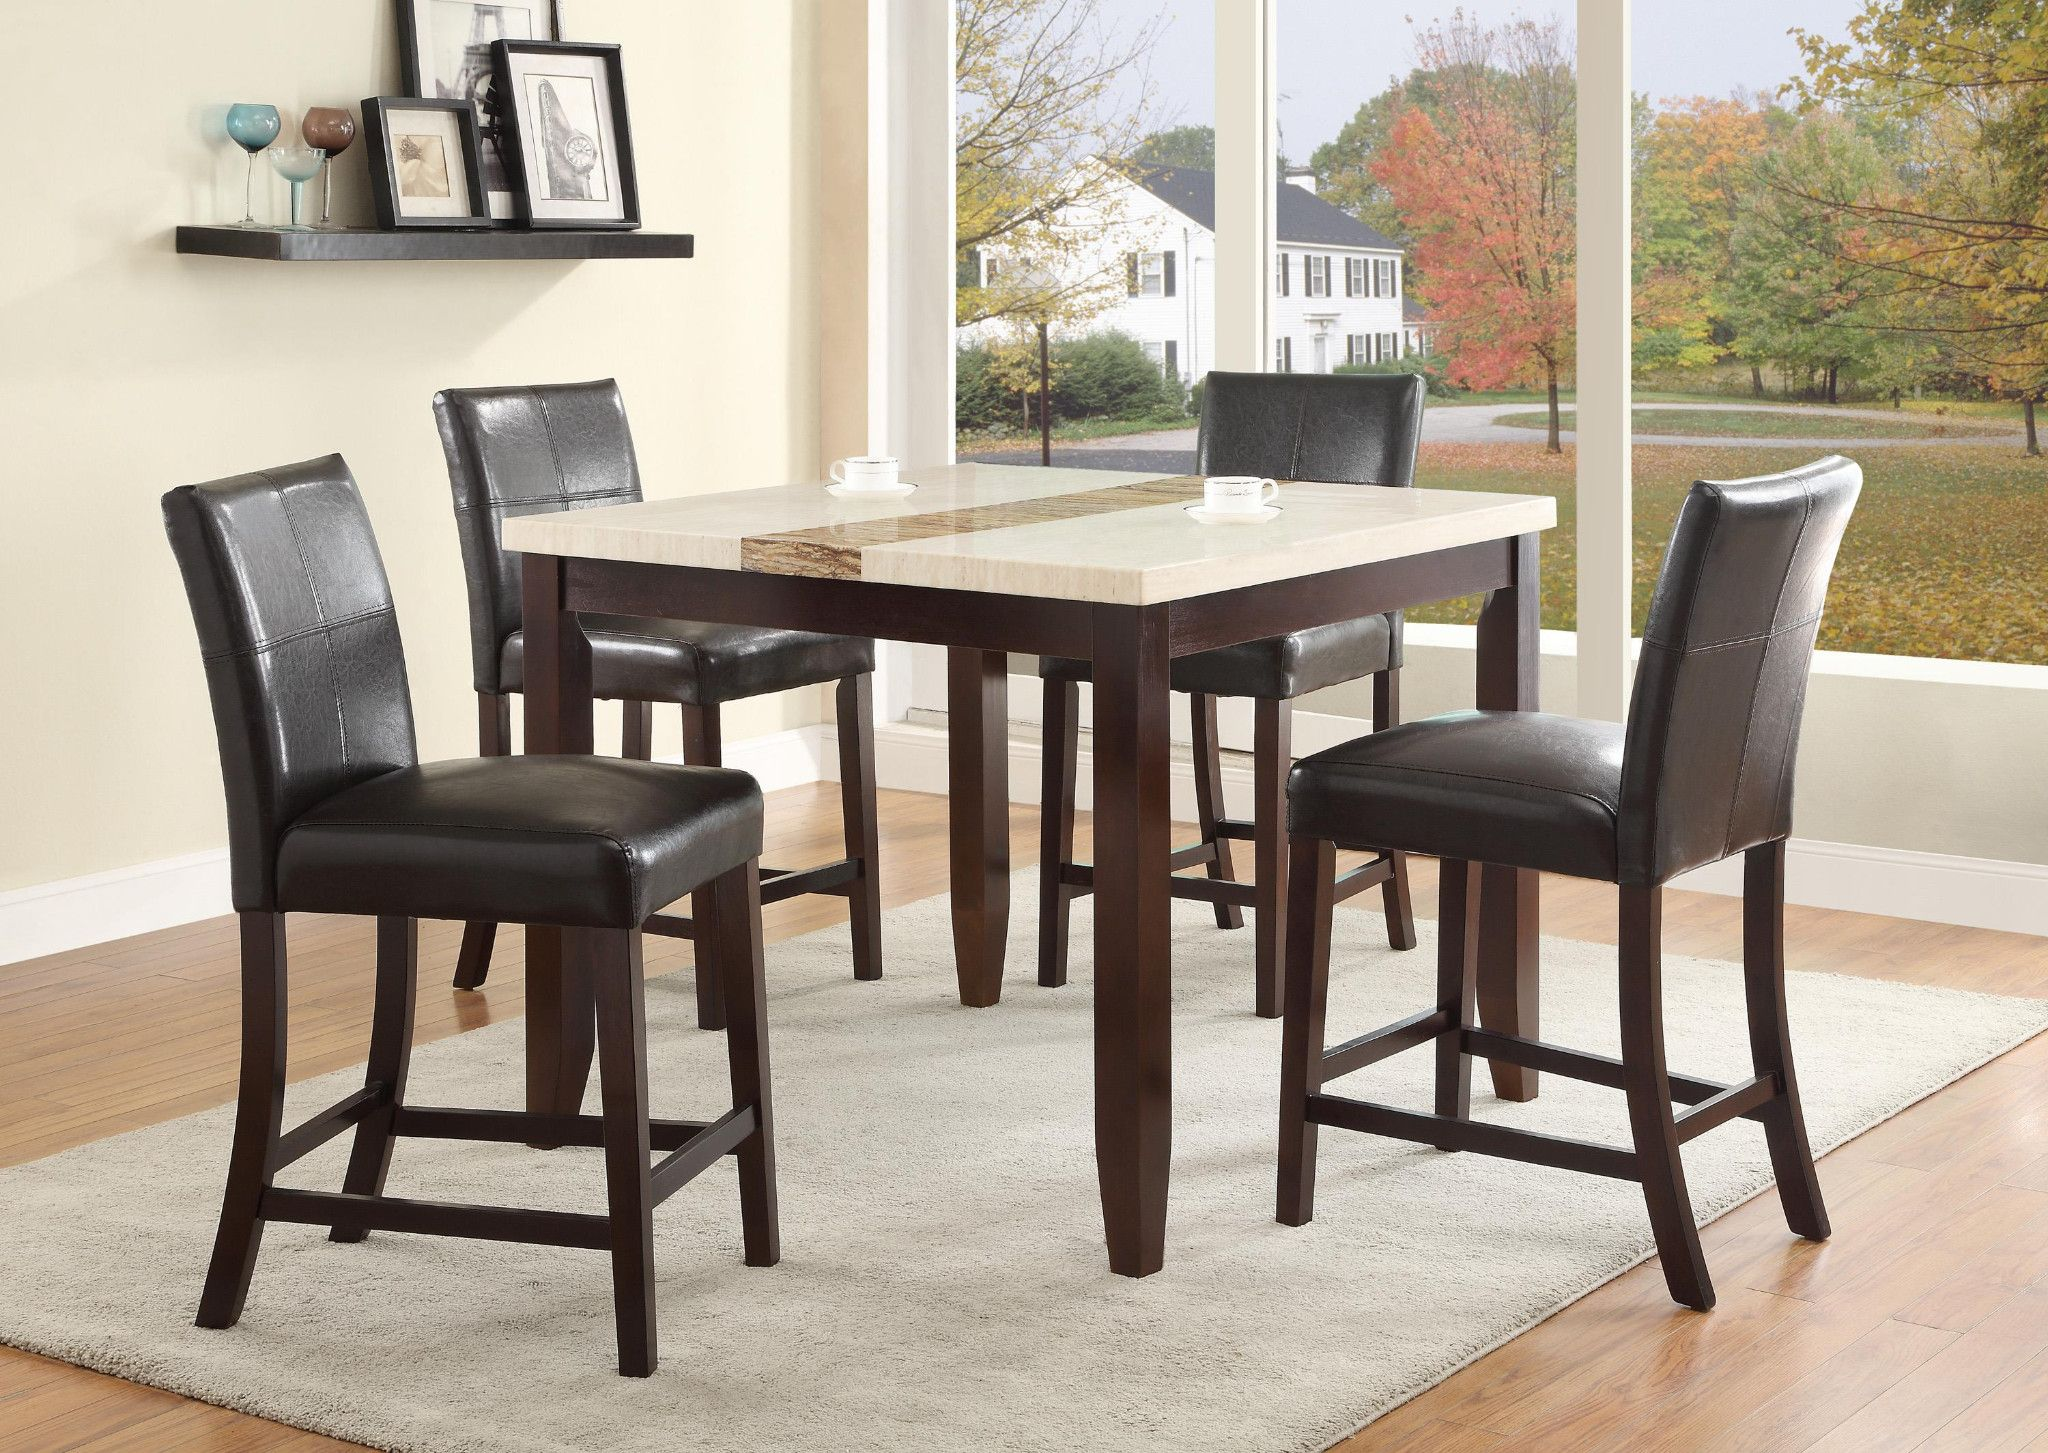 Larissa 5 Piece Counter Height Table And 4 Chairs 599 00 Table 42